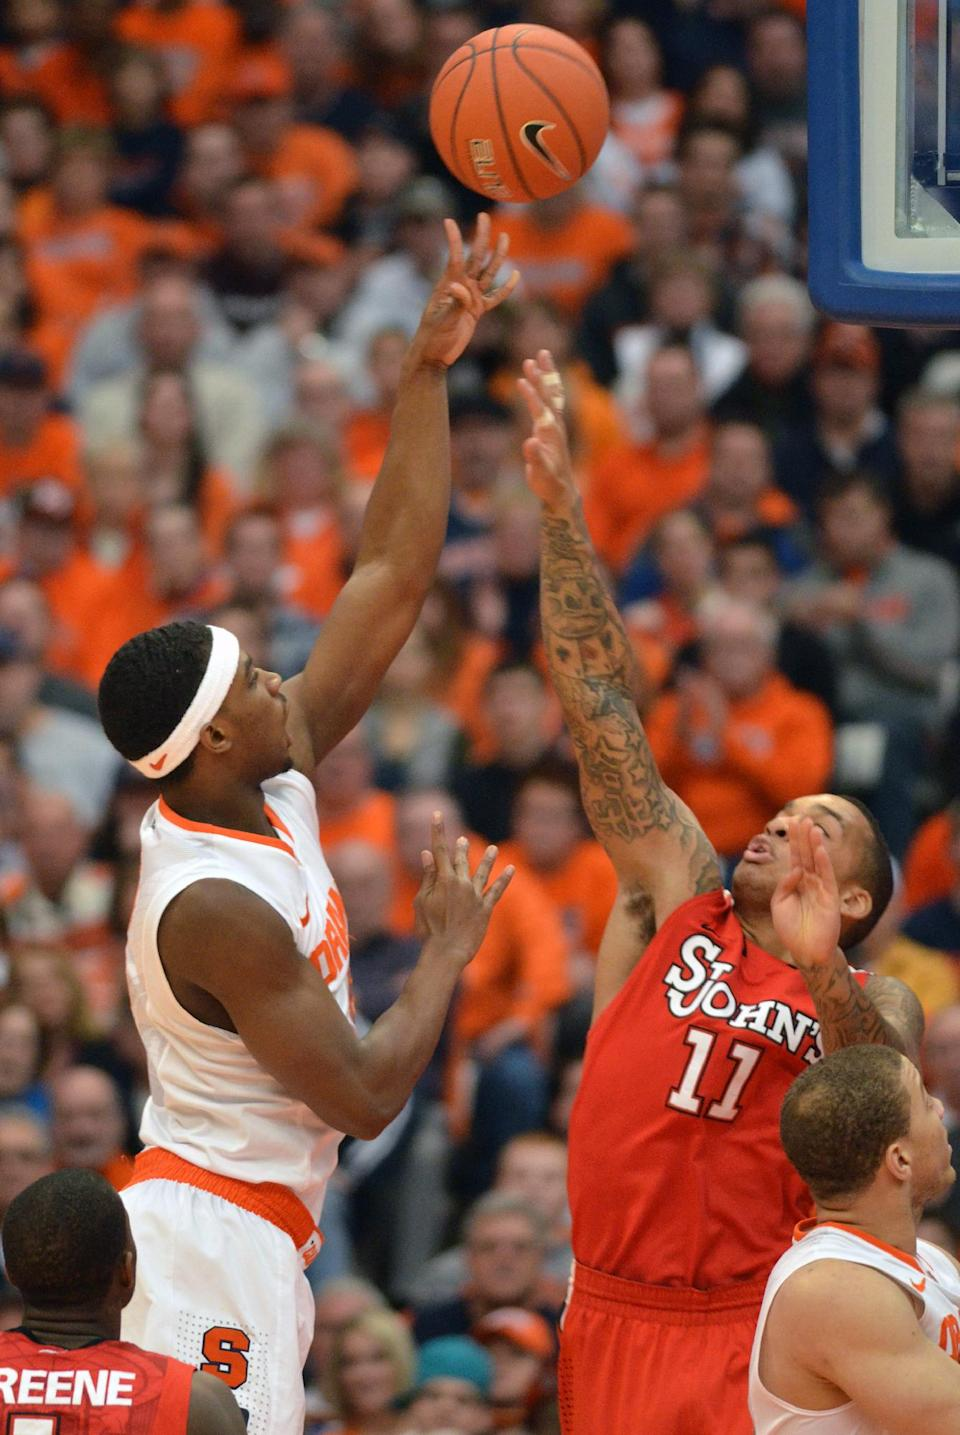 Syracuse's C. J. Fair, left, shoots over St. John's D'Angelo Harrison during the first half of an NCAA college basketball game in Syracuse, N.Y., Sunday, Feb. 10, 2013. (AP Photo/Kevin Rivoli)